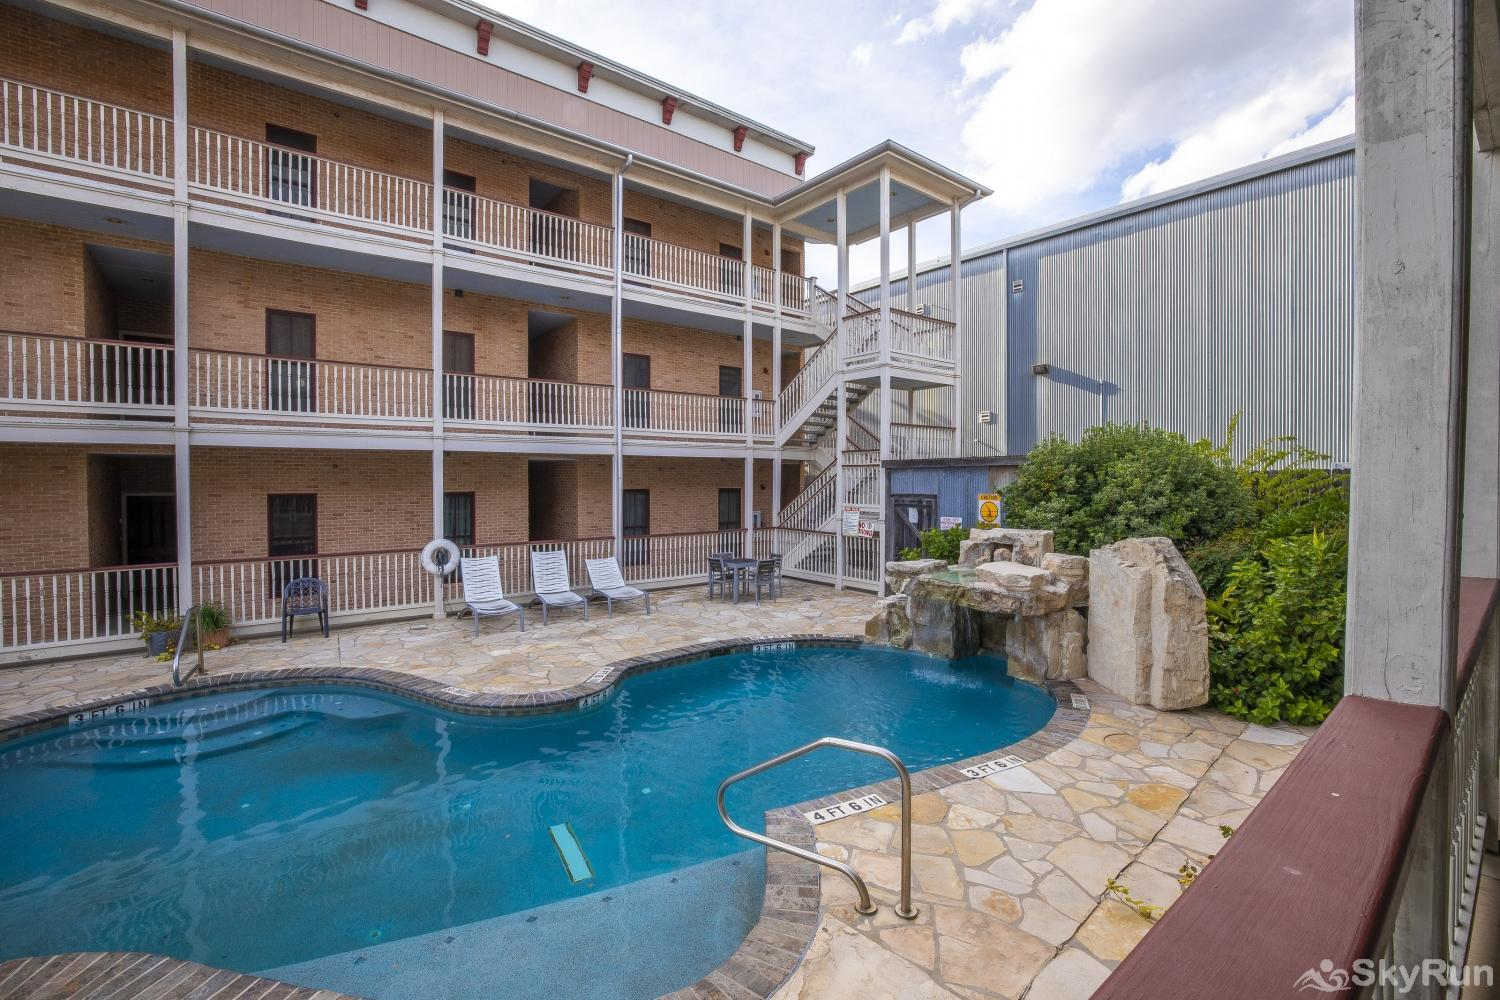 GRUENE GETAWAY Reserve your New Braunfels vacation today!